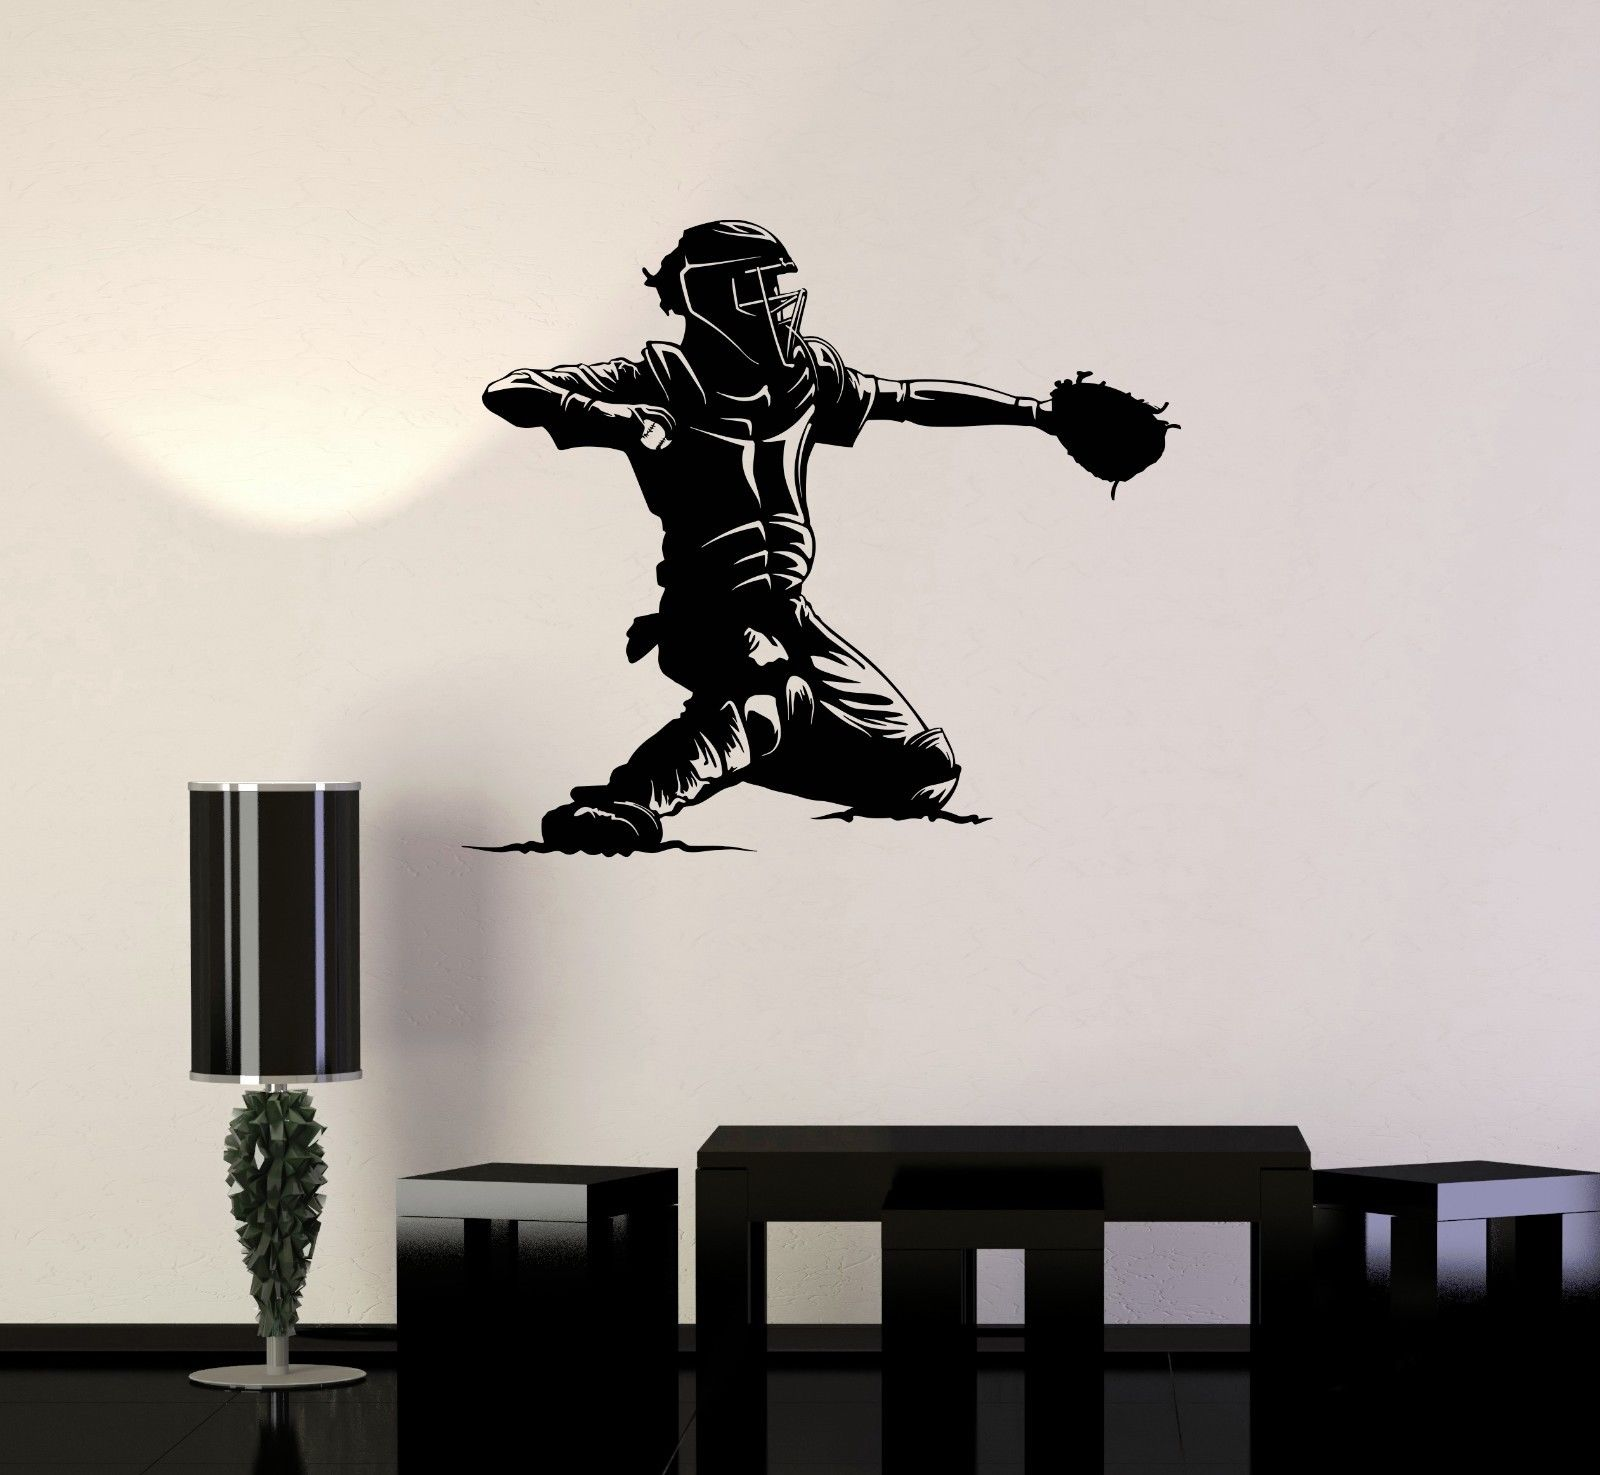 20416 New Vinyl Decal Baseball Catcher Player Sports Man Fan Decor Wall Stickers Free Shipping